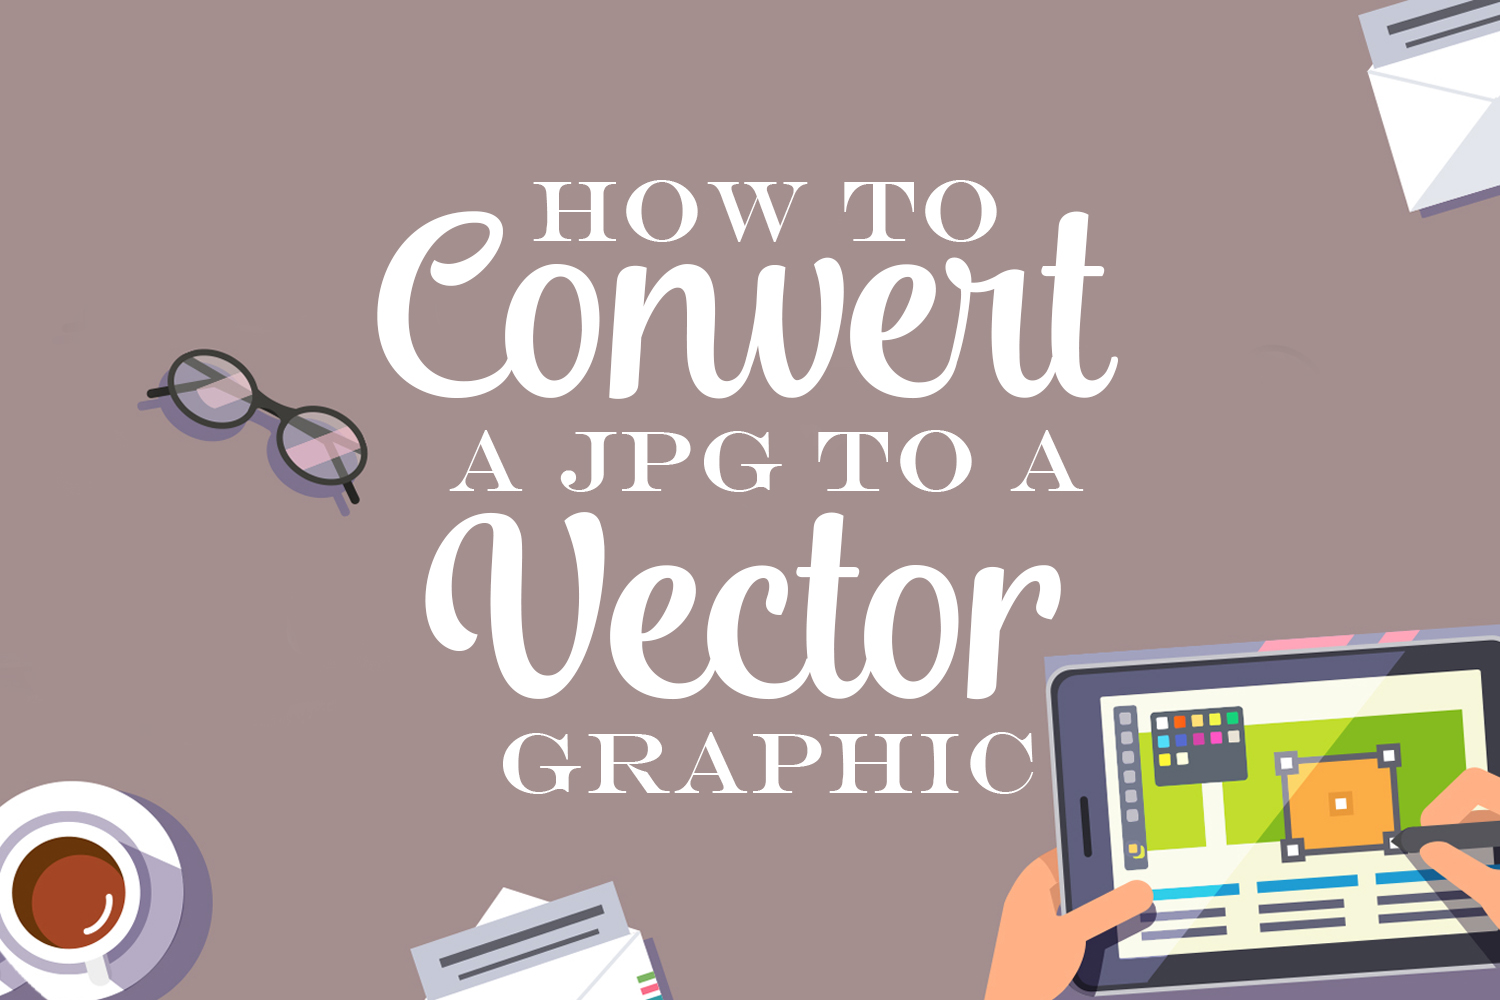 How to Convert a JPG to a Vector Graphic